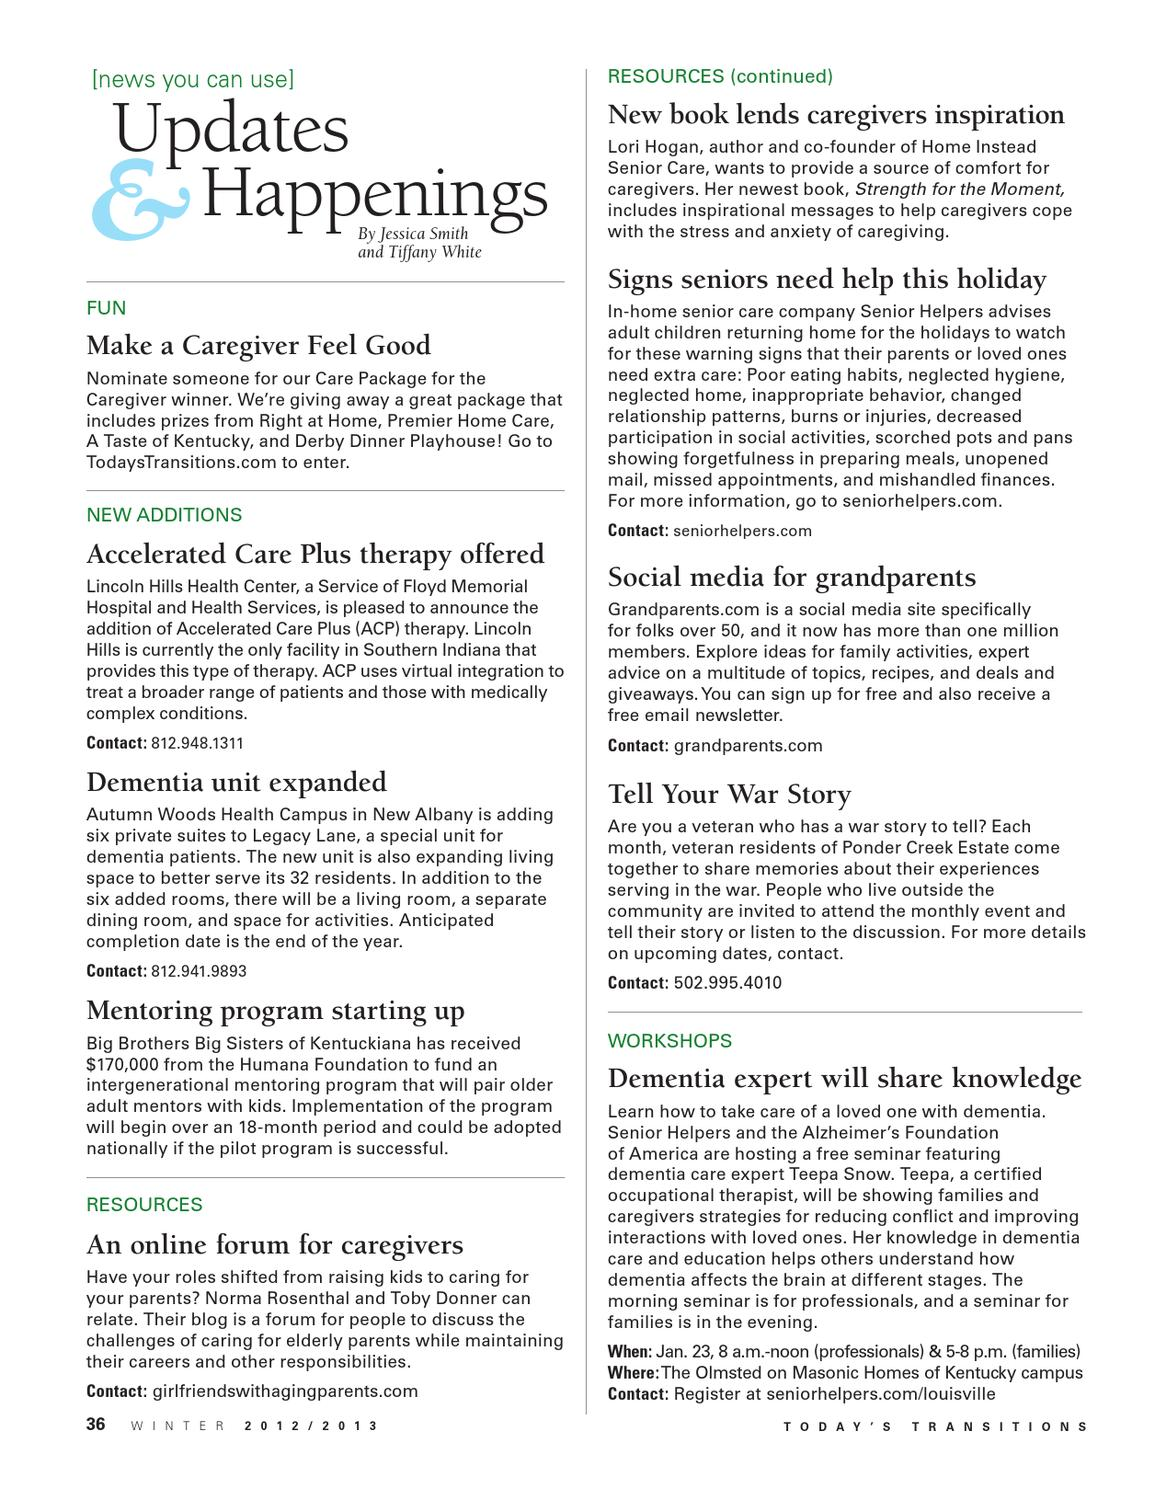 Today's Transitions Winter 2013 by Today's Media - issuu